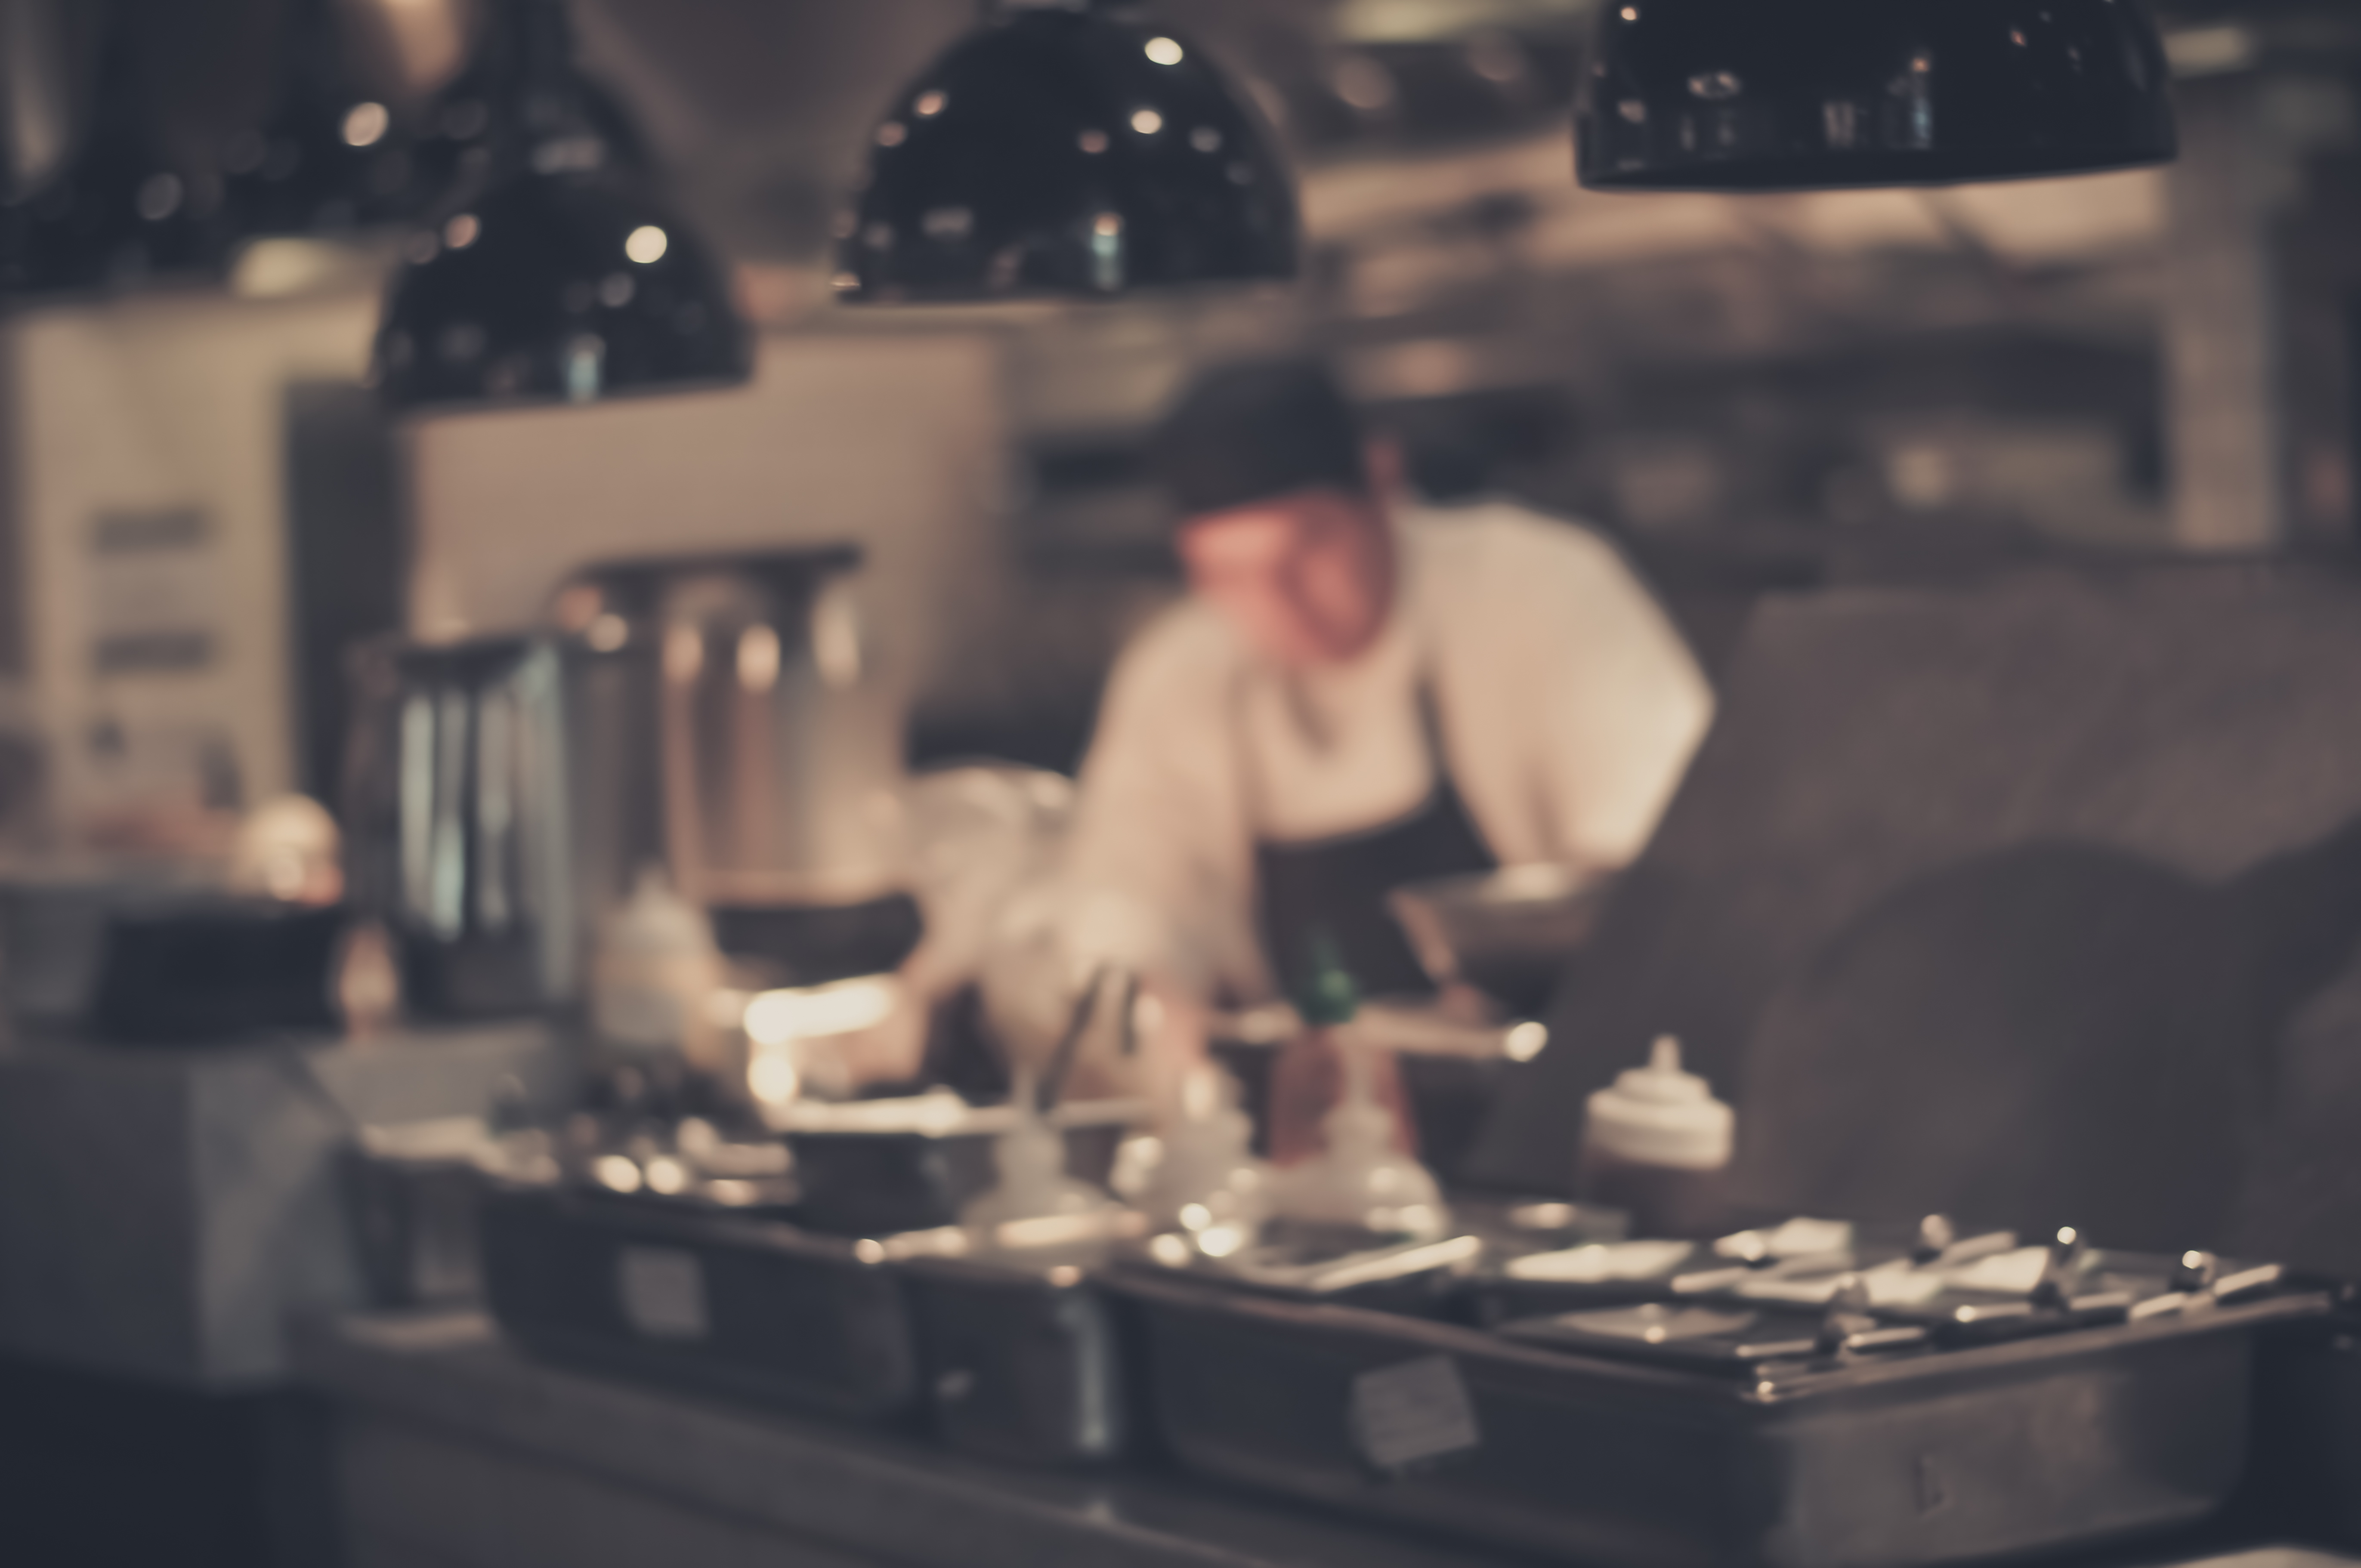 blurred image of cook in restaurant with prep items in the foreground